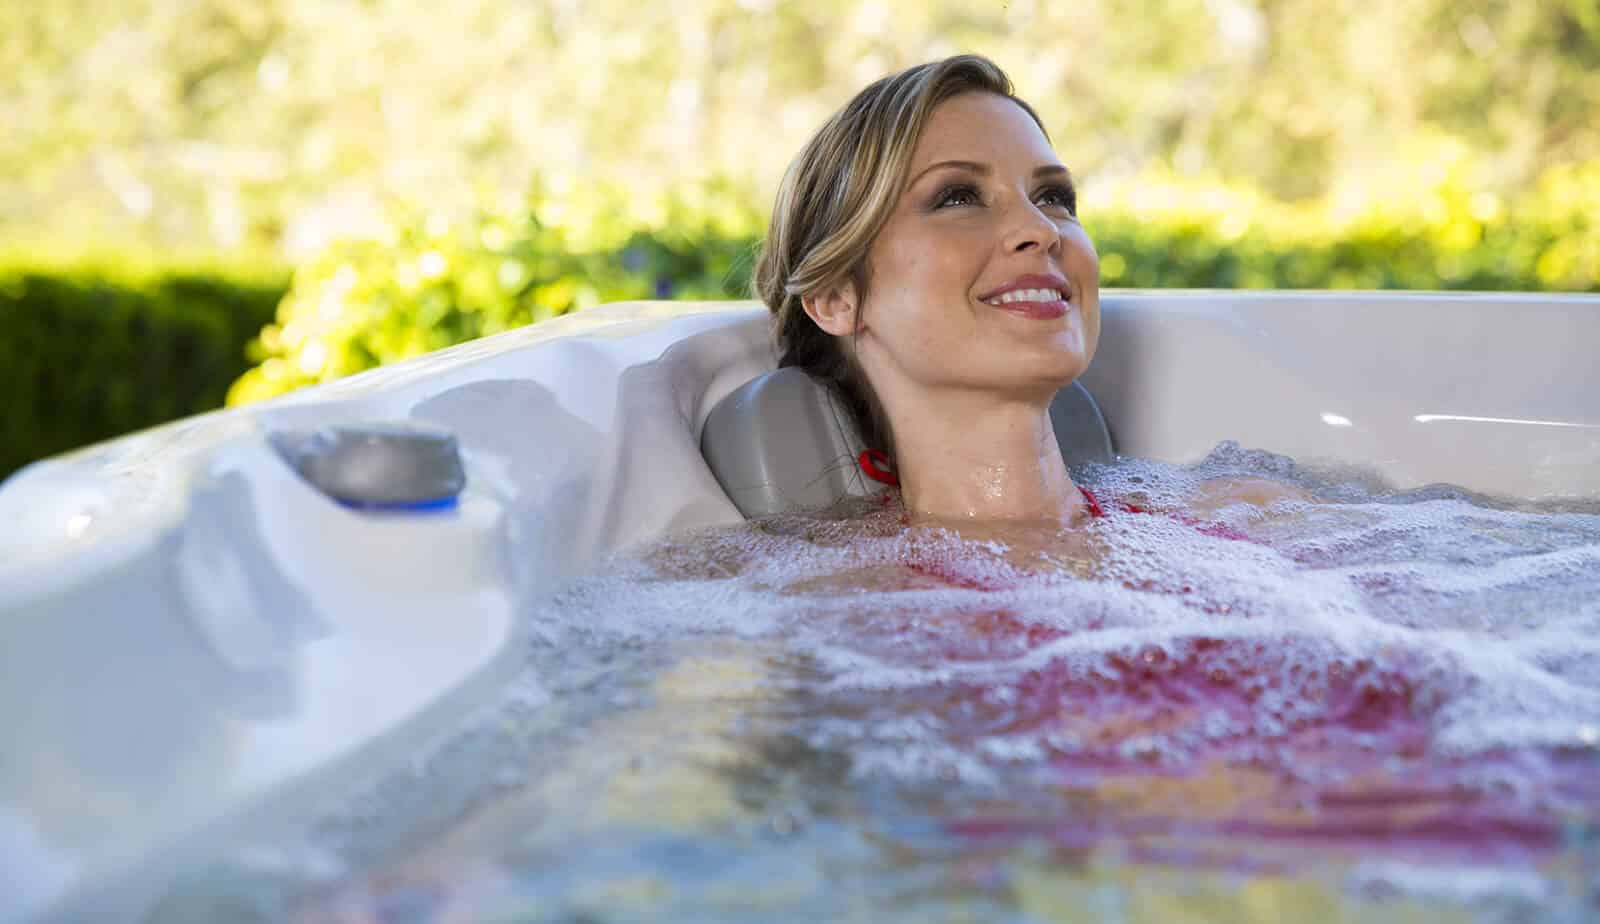 Relax in a Hot Tub